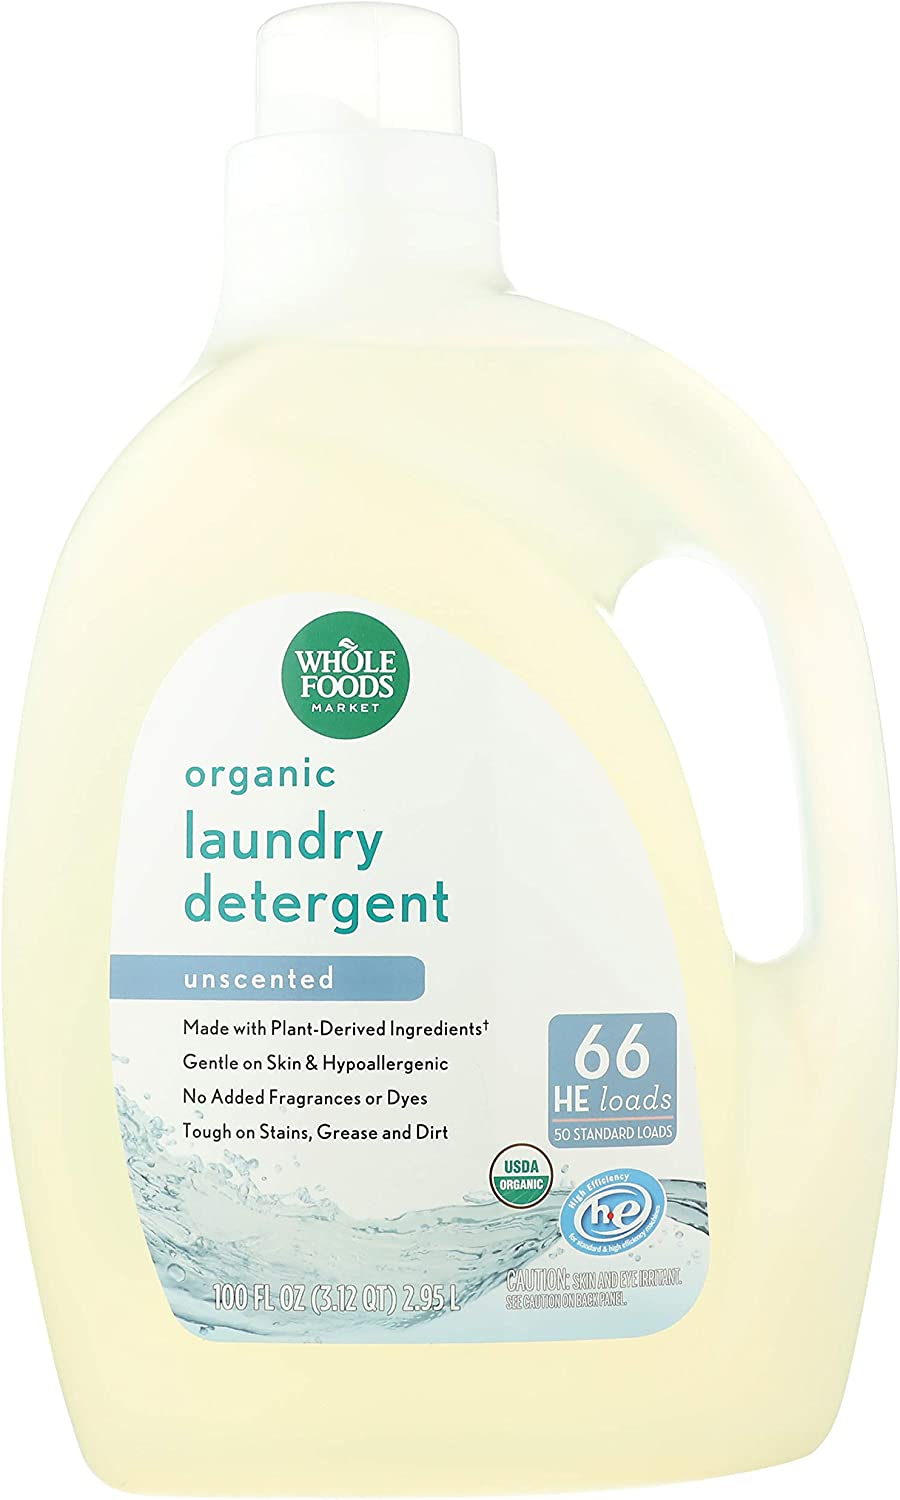 Whole Foods Market Organic Seattle Mall Laundry HE Uns Loads Indefinitely 66 Detergent